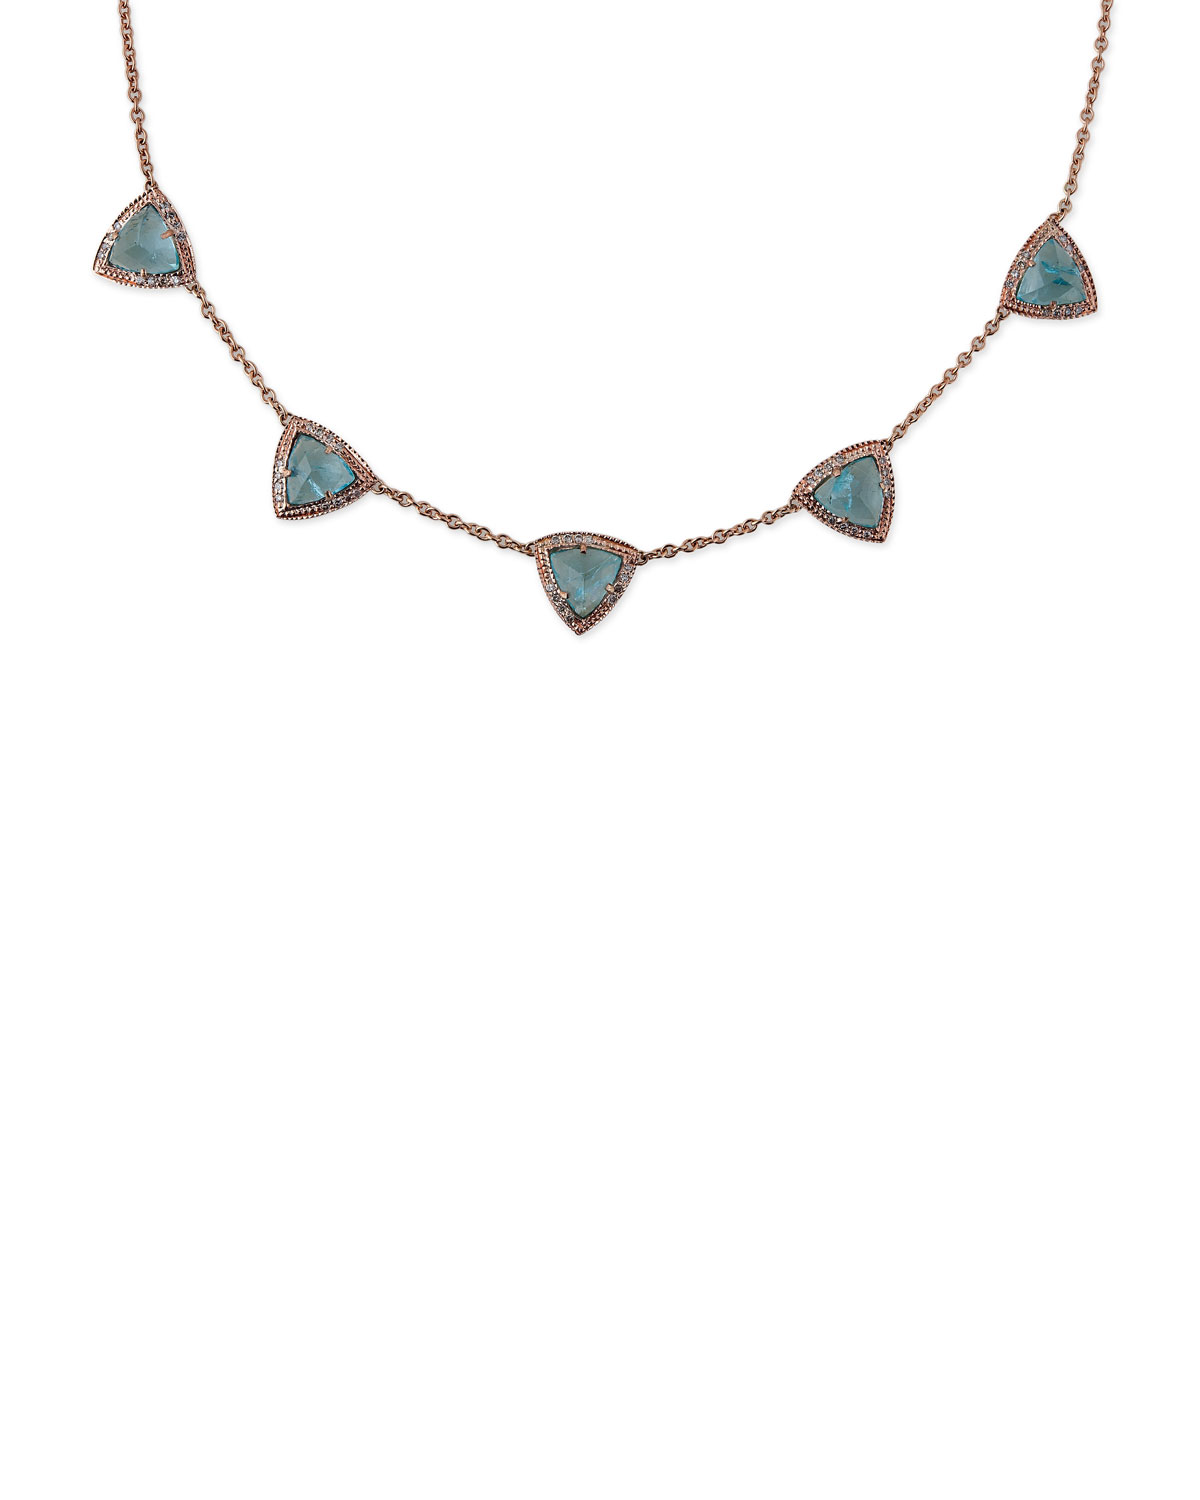 Jacquie Aiche Marquis Aquamarine Charm & Diamond Shaker Necklace